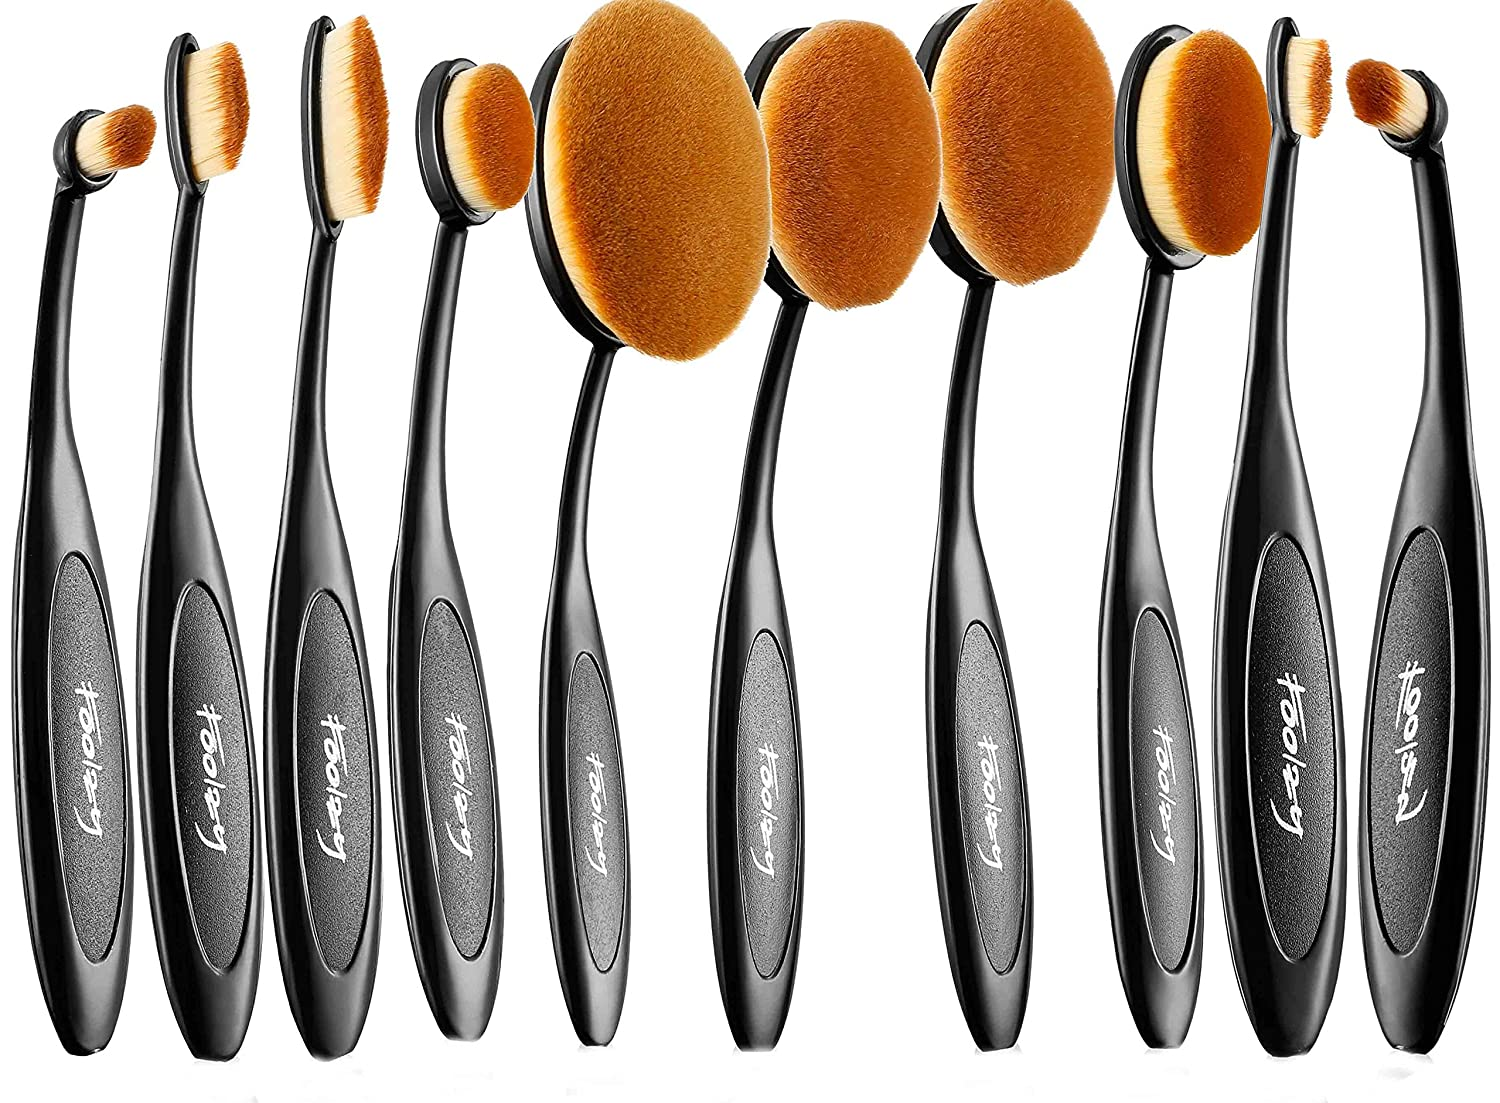 Foolzy BR-20A Oval Makeup Brush Set, Black (Set of 10)